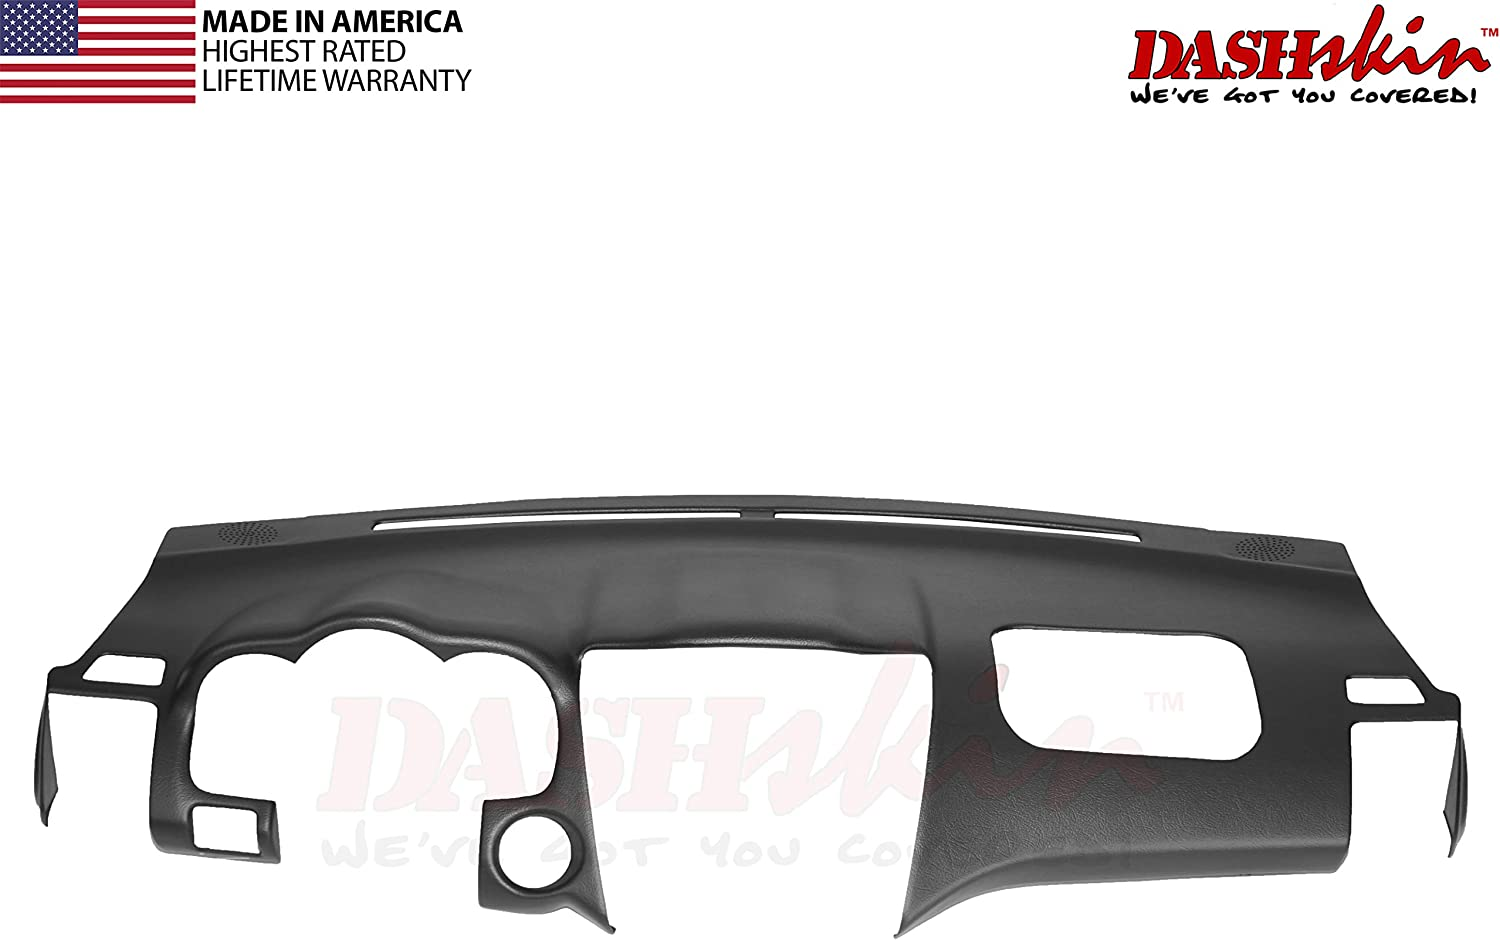 w//o Center Speaker Holes USA Made DashSkin Molded Dash Cover Compatible with 04-09 Lexus RX330 RX350 RX400h in Black